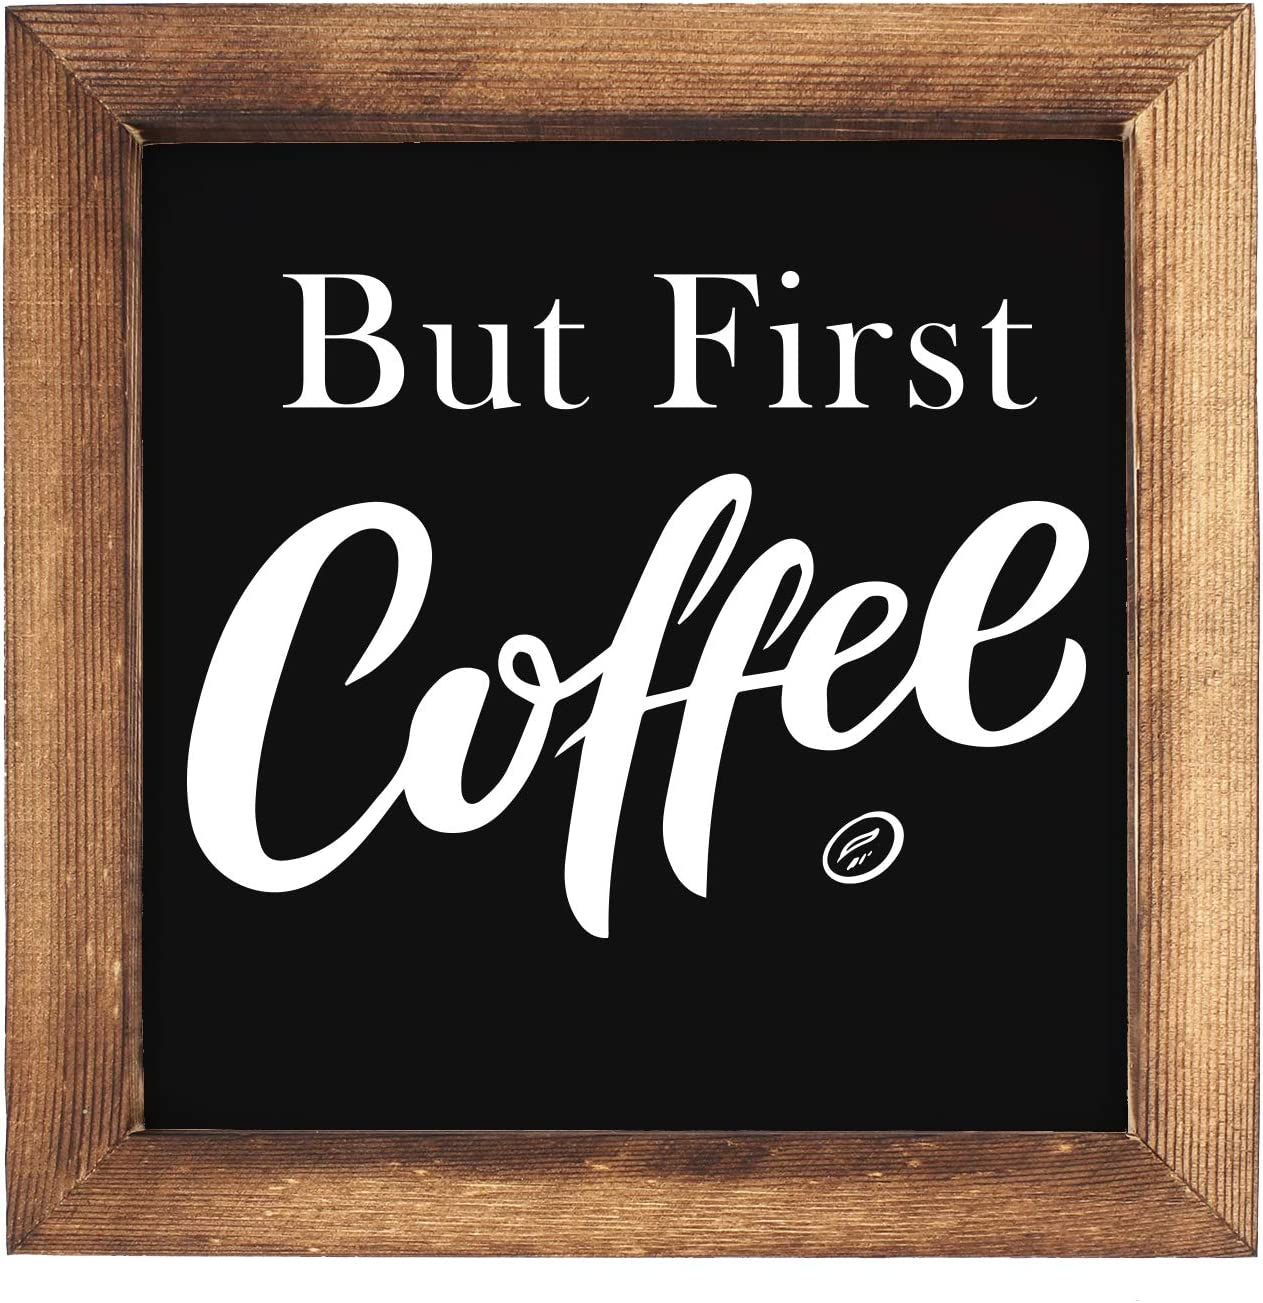 KU-DaYi But First Coffee Framed Block Sign 7 x 7 inches Rustic Farmhouse Style Solid Wood Sign Art Decor Standing On Shelf Table Friend Idea. (Black)